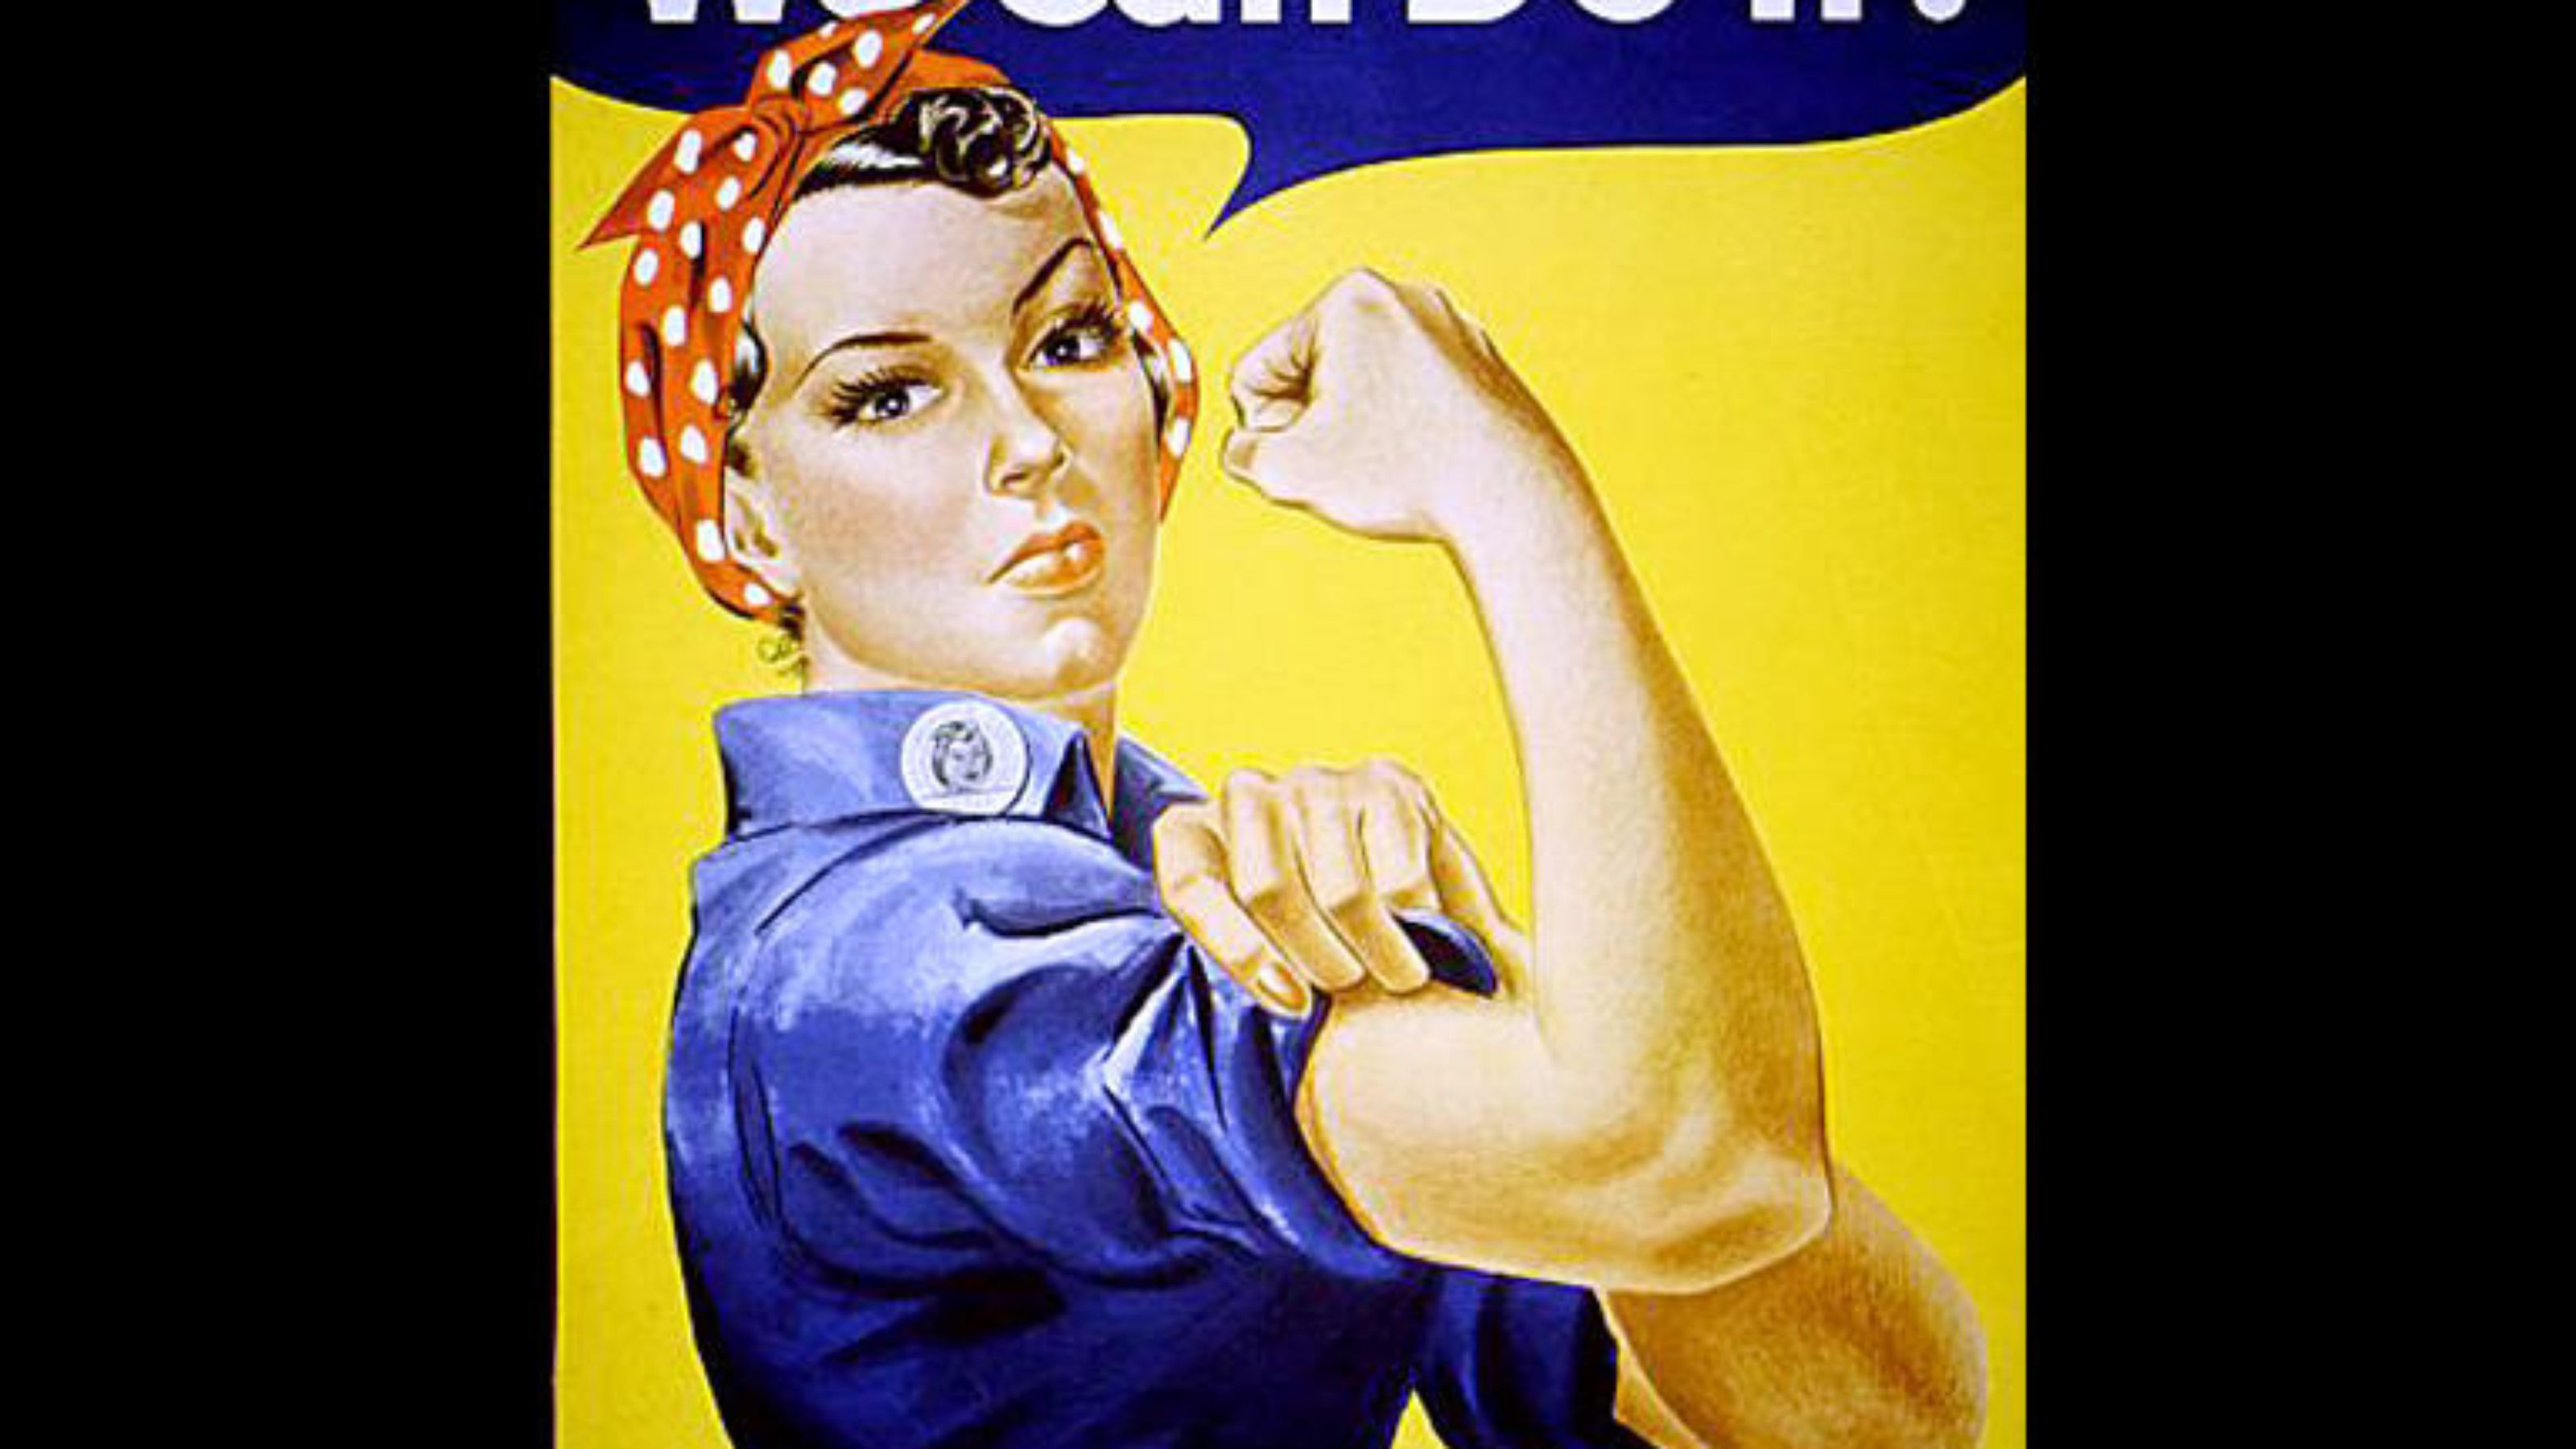 rosie the riveter hd wallpapers. Black Bedroom Furniture Sets. Home Design Ideas